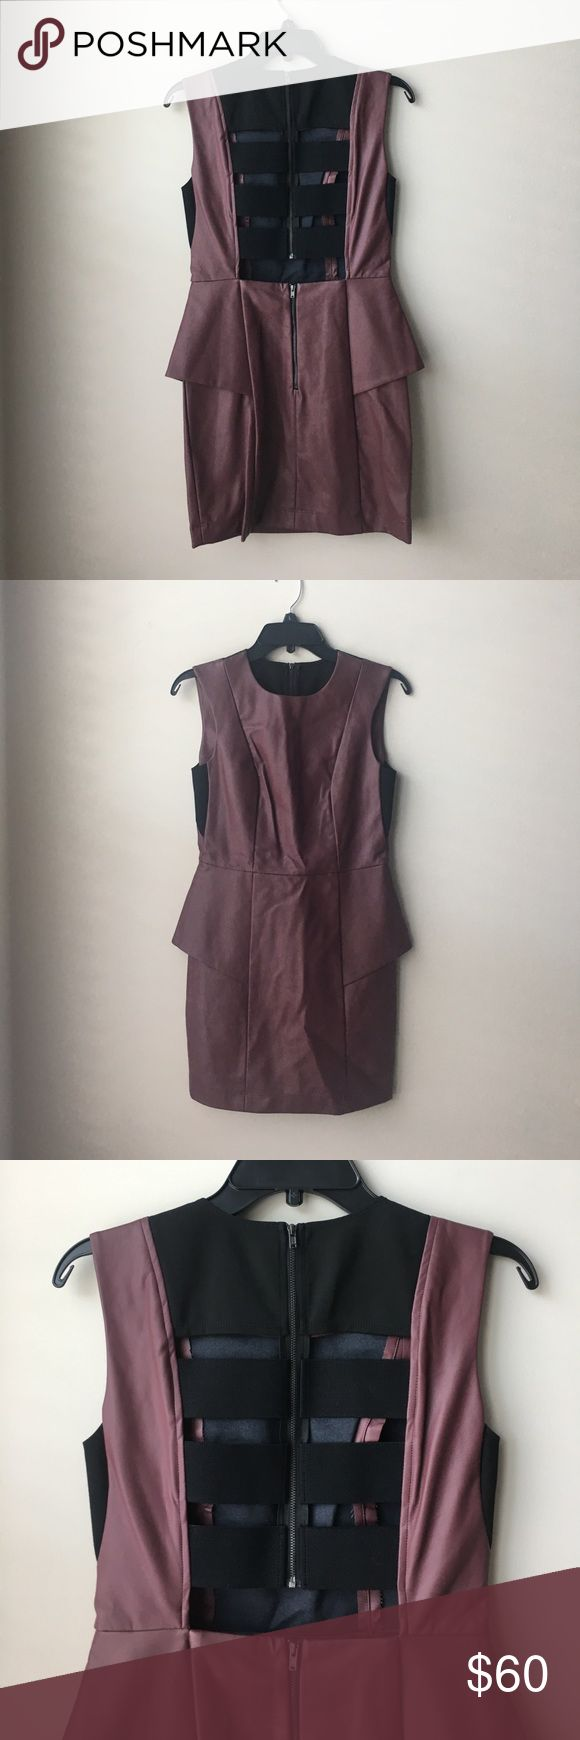 BCBGeneration dark saffron peplum dress NEW sz 4 BCBGeneration dark saffron peplum dress NEW sz 4, brand new with tags, original price $128, refer to last photo for picture of tags BCBGeneration Dresses Mini